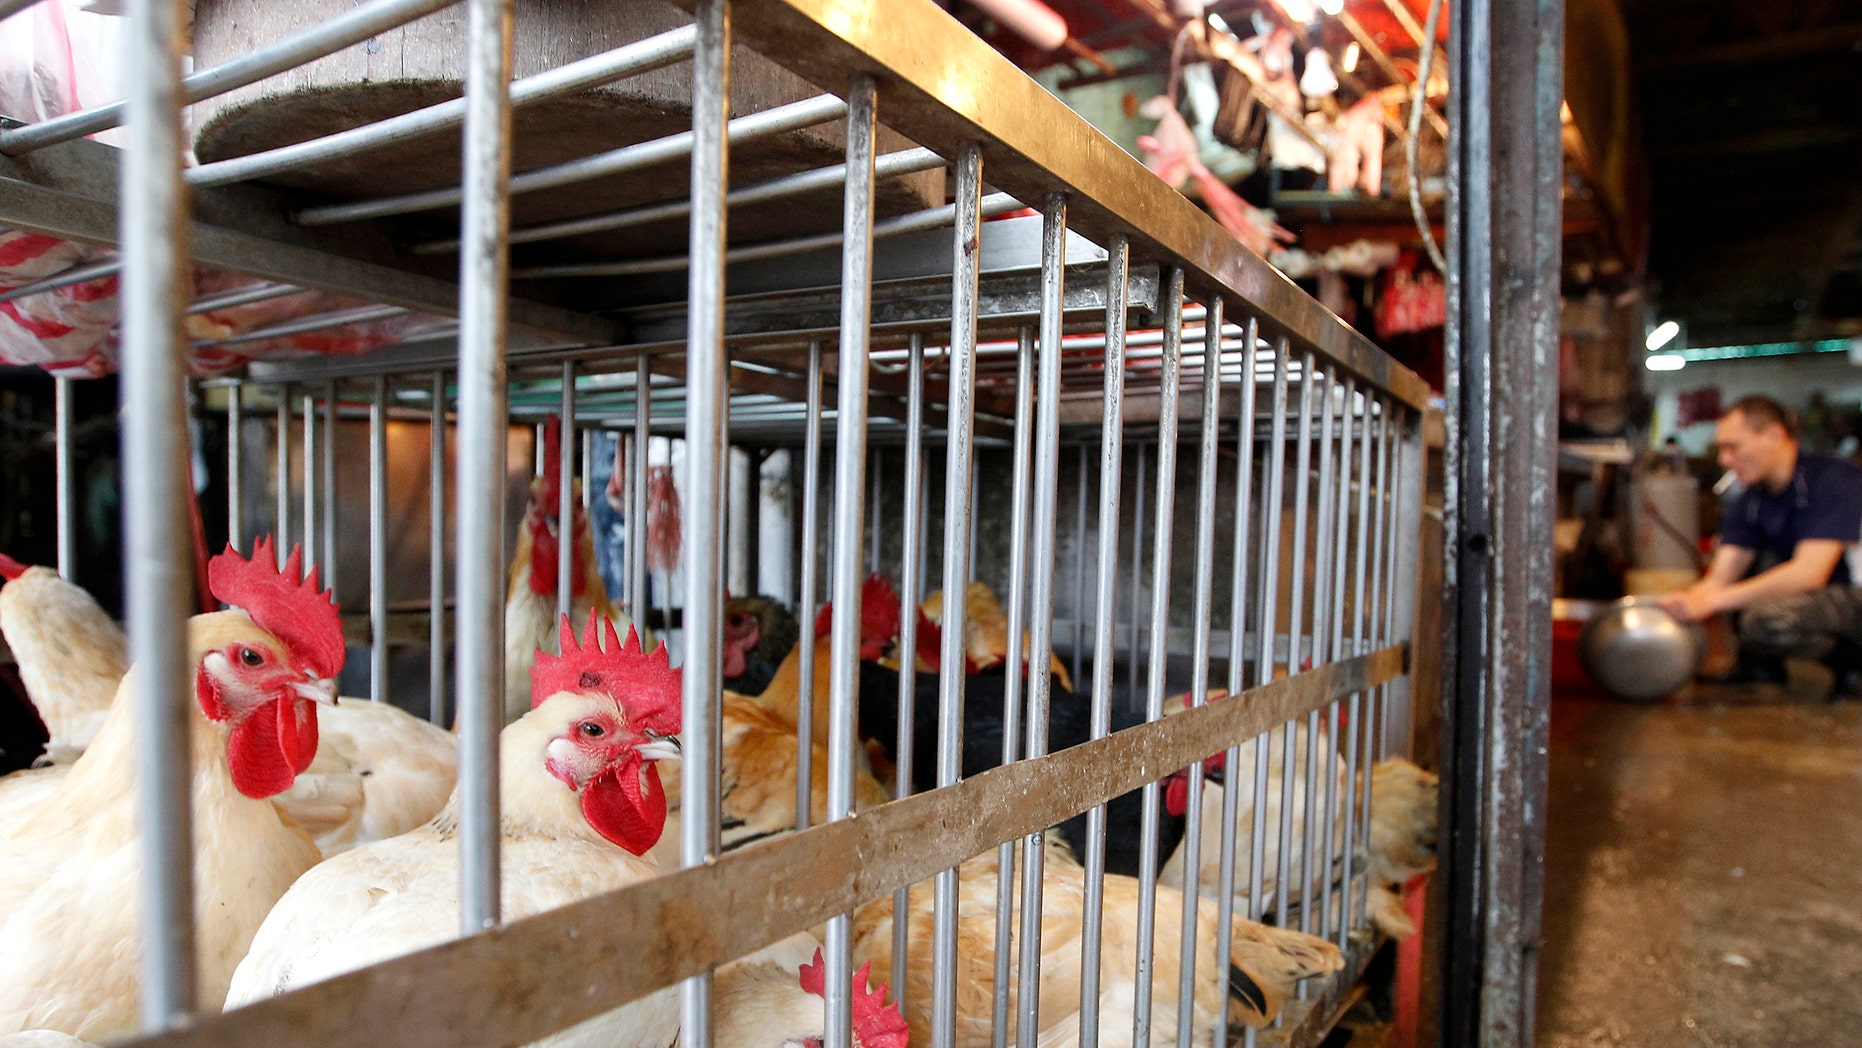 Chickens sit inside cages in a traditional market in Taipei April 25, 2013.